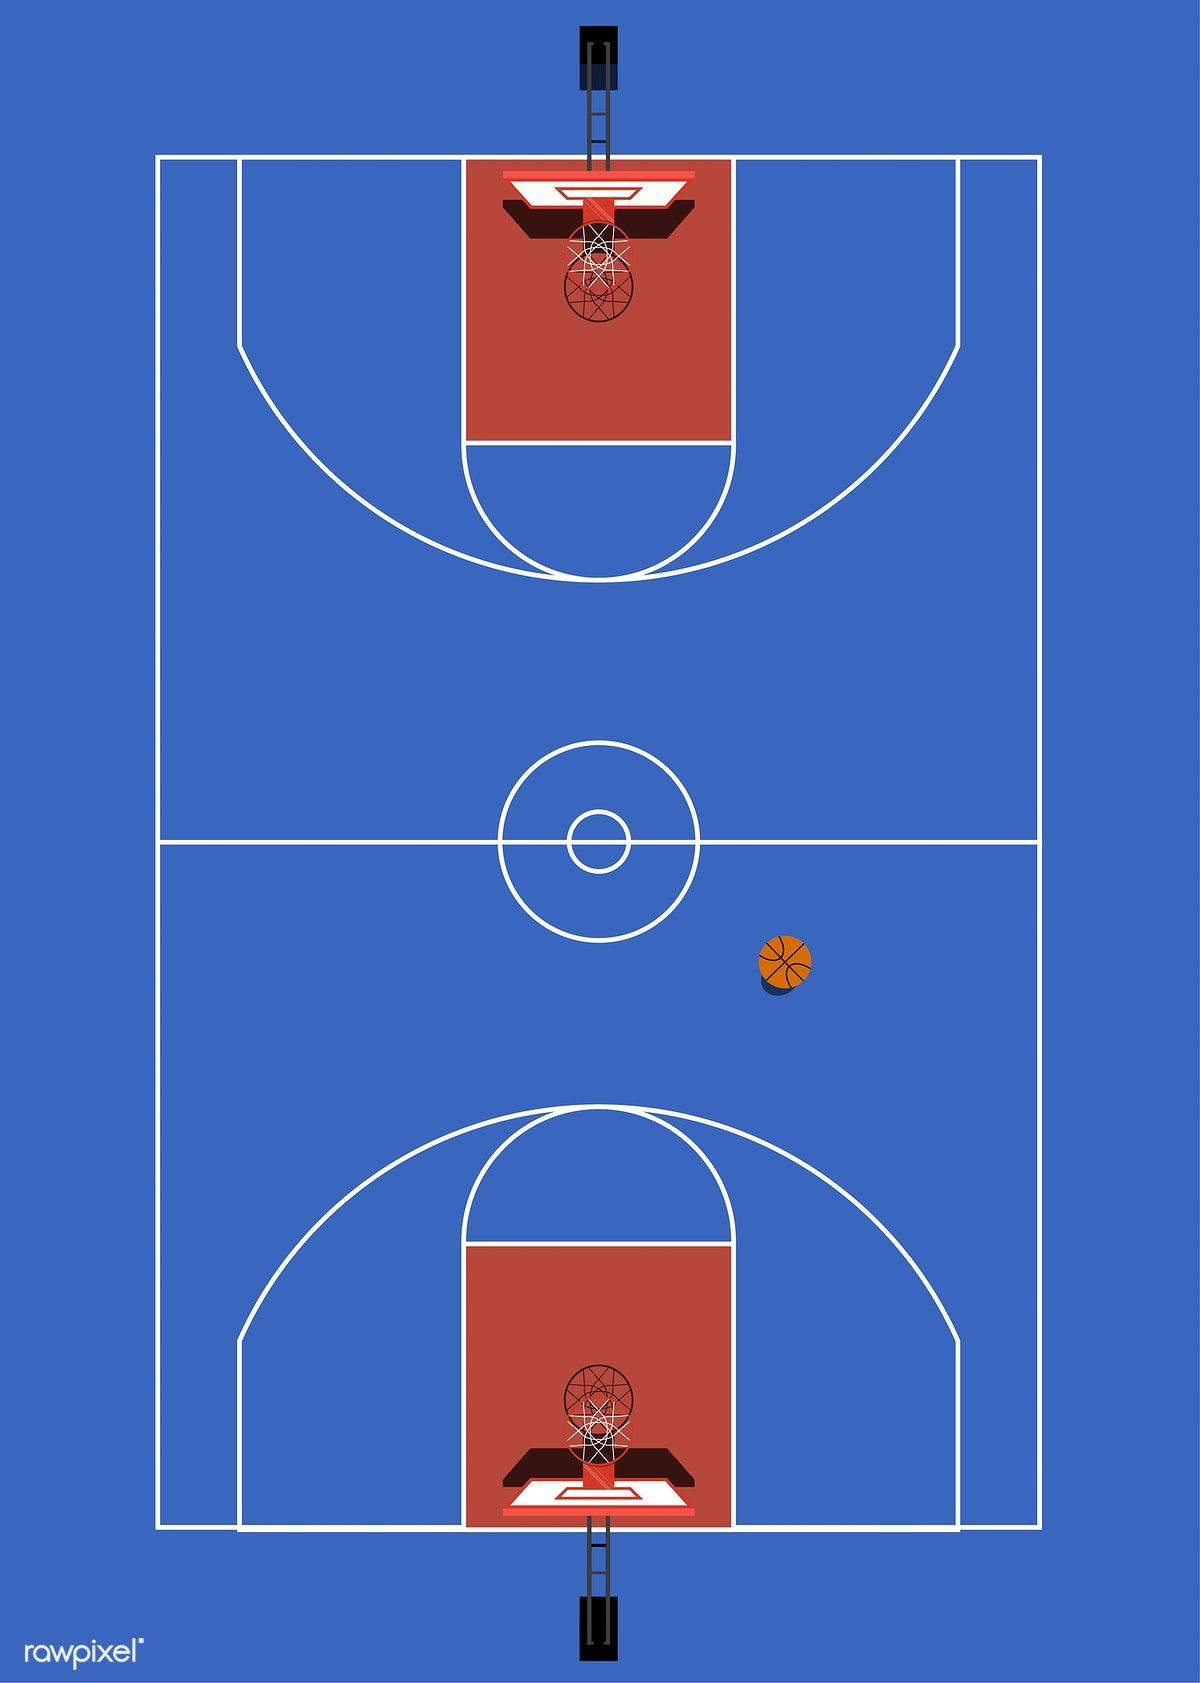 Aerial View Of A Basketball Court Free Image By Rawpixel Com Basketball Court Basketball Drawings Basketball